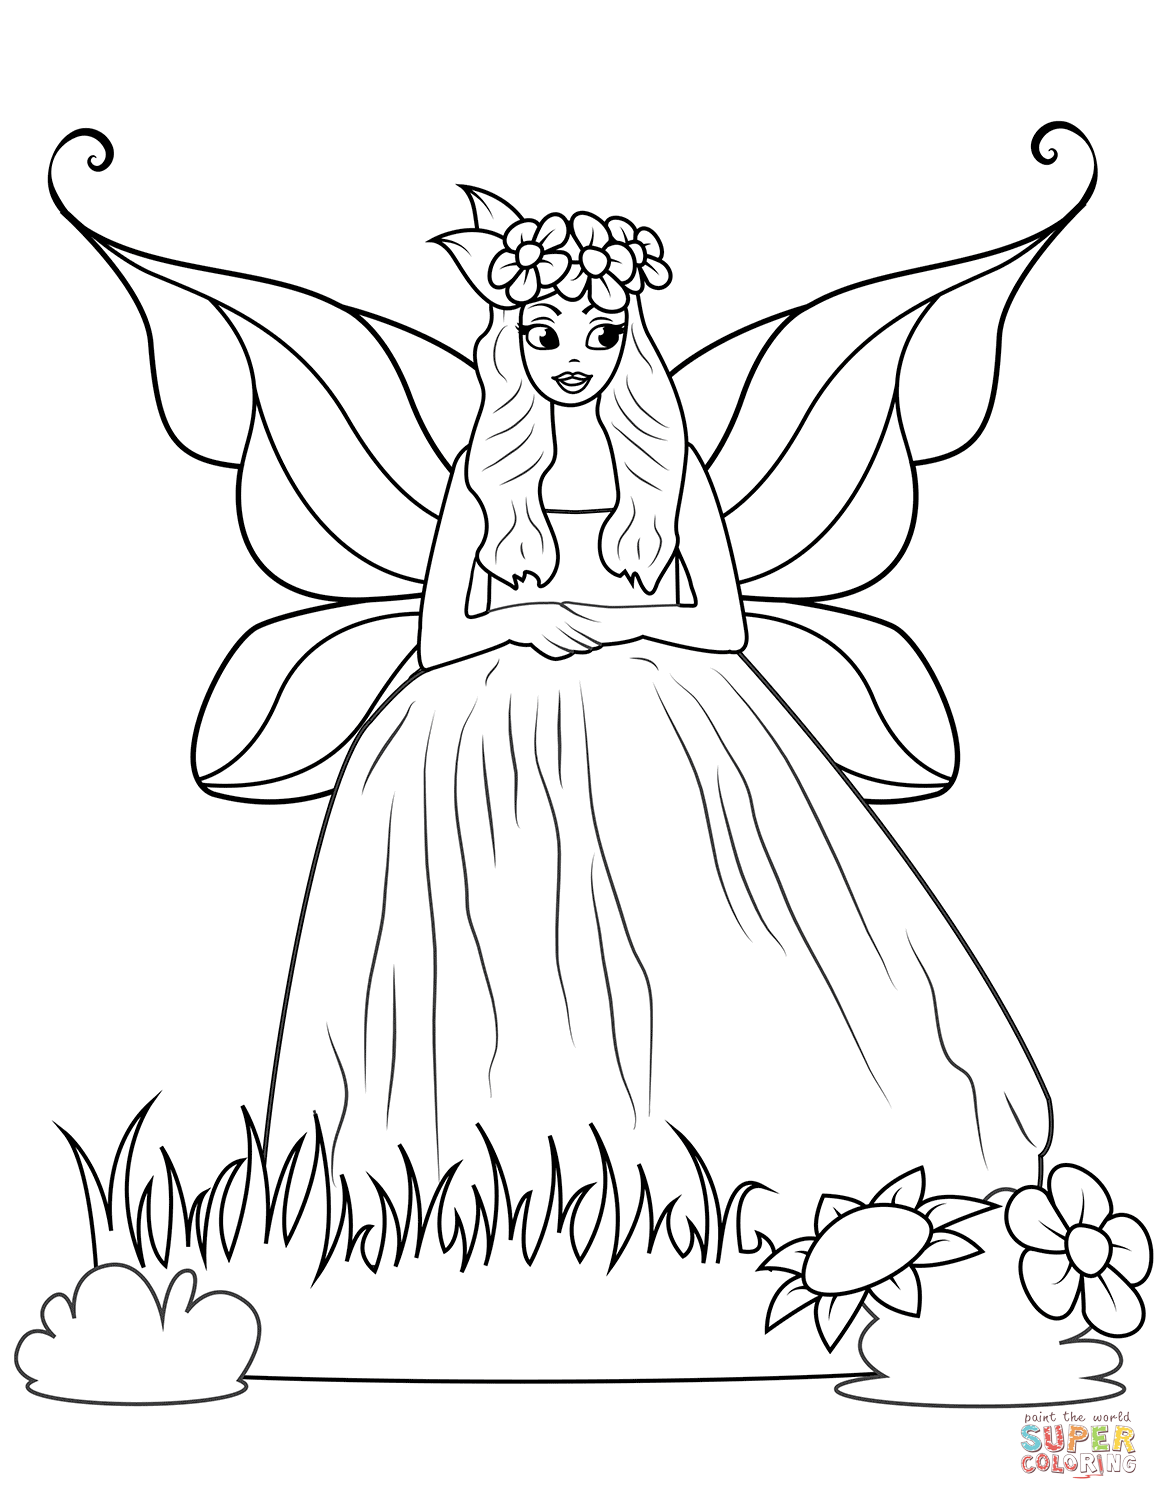 Fairy In Ball Gown Dress Coloring Page Free Printable Coloring Pages Fairy Coloring Pages Unicorn Coloring Pages Fairy Coloring